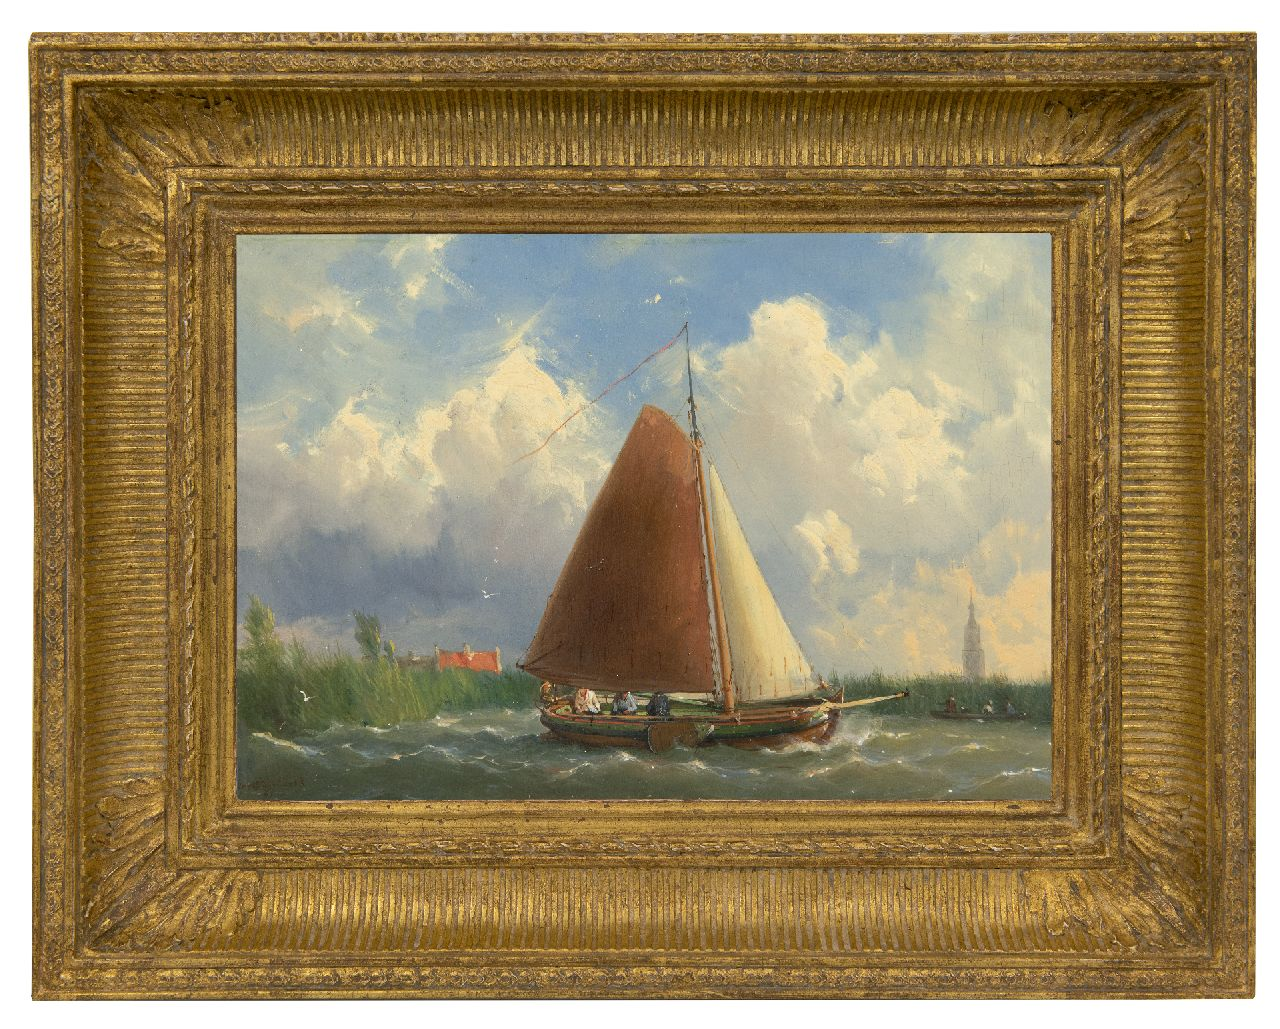 Koekkoek J.H.B.  | Johannes Hermanus Barend 'Jan H.B.' Koekkoek | Paintings offered for sale | Shipping on a Frisian yacht, oil on panel 23.1 x 32.6 cm, signed l.l. and dated '61